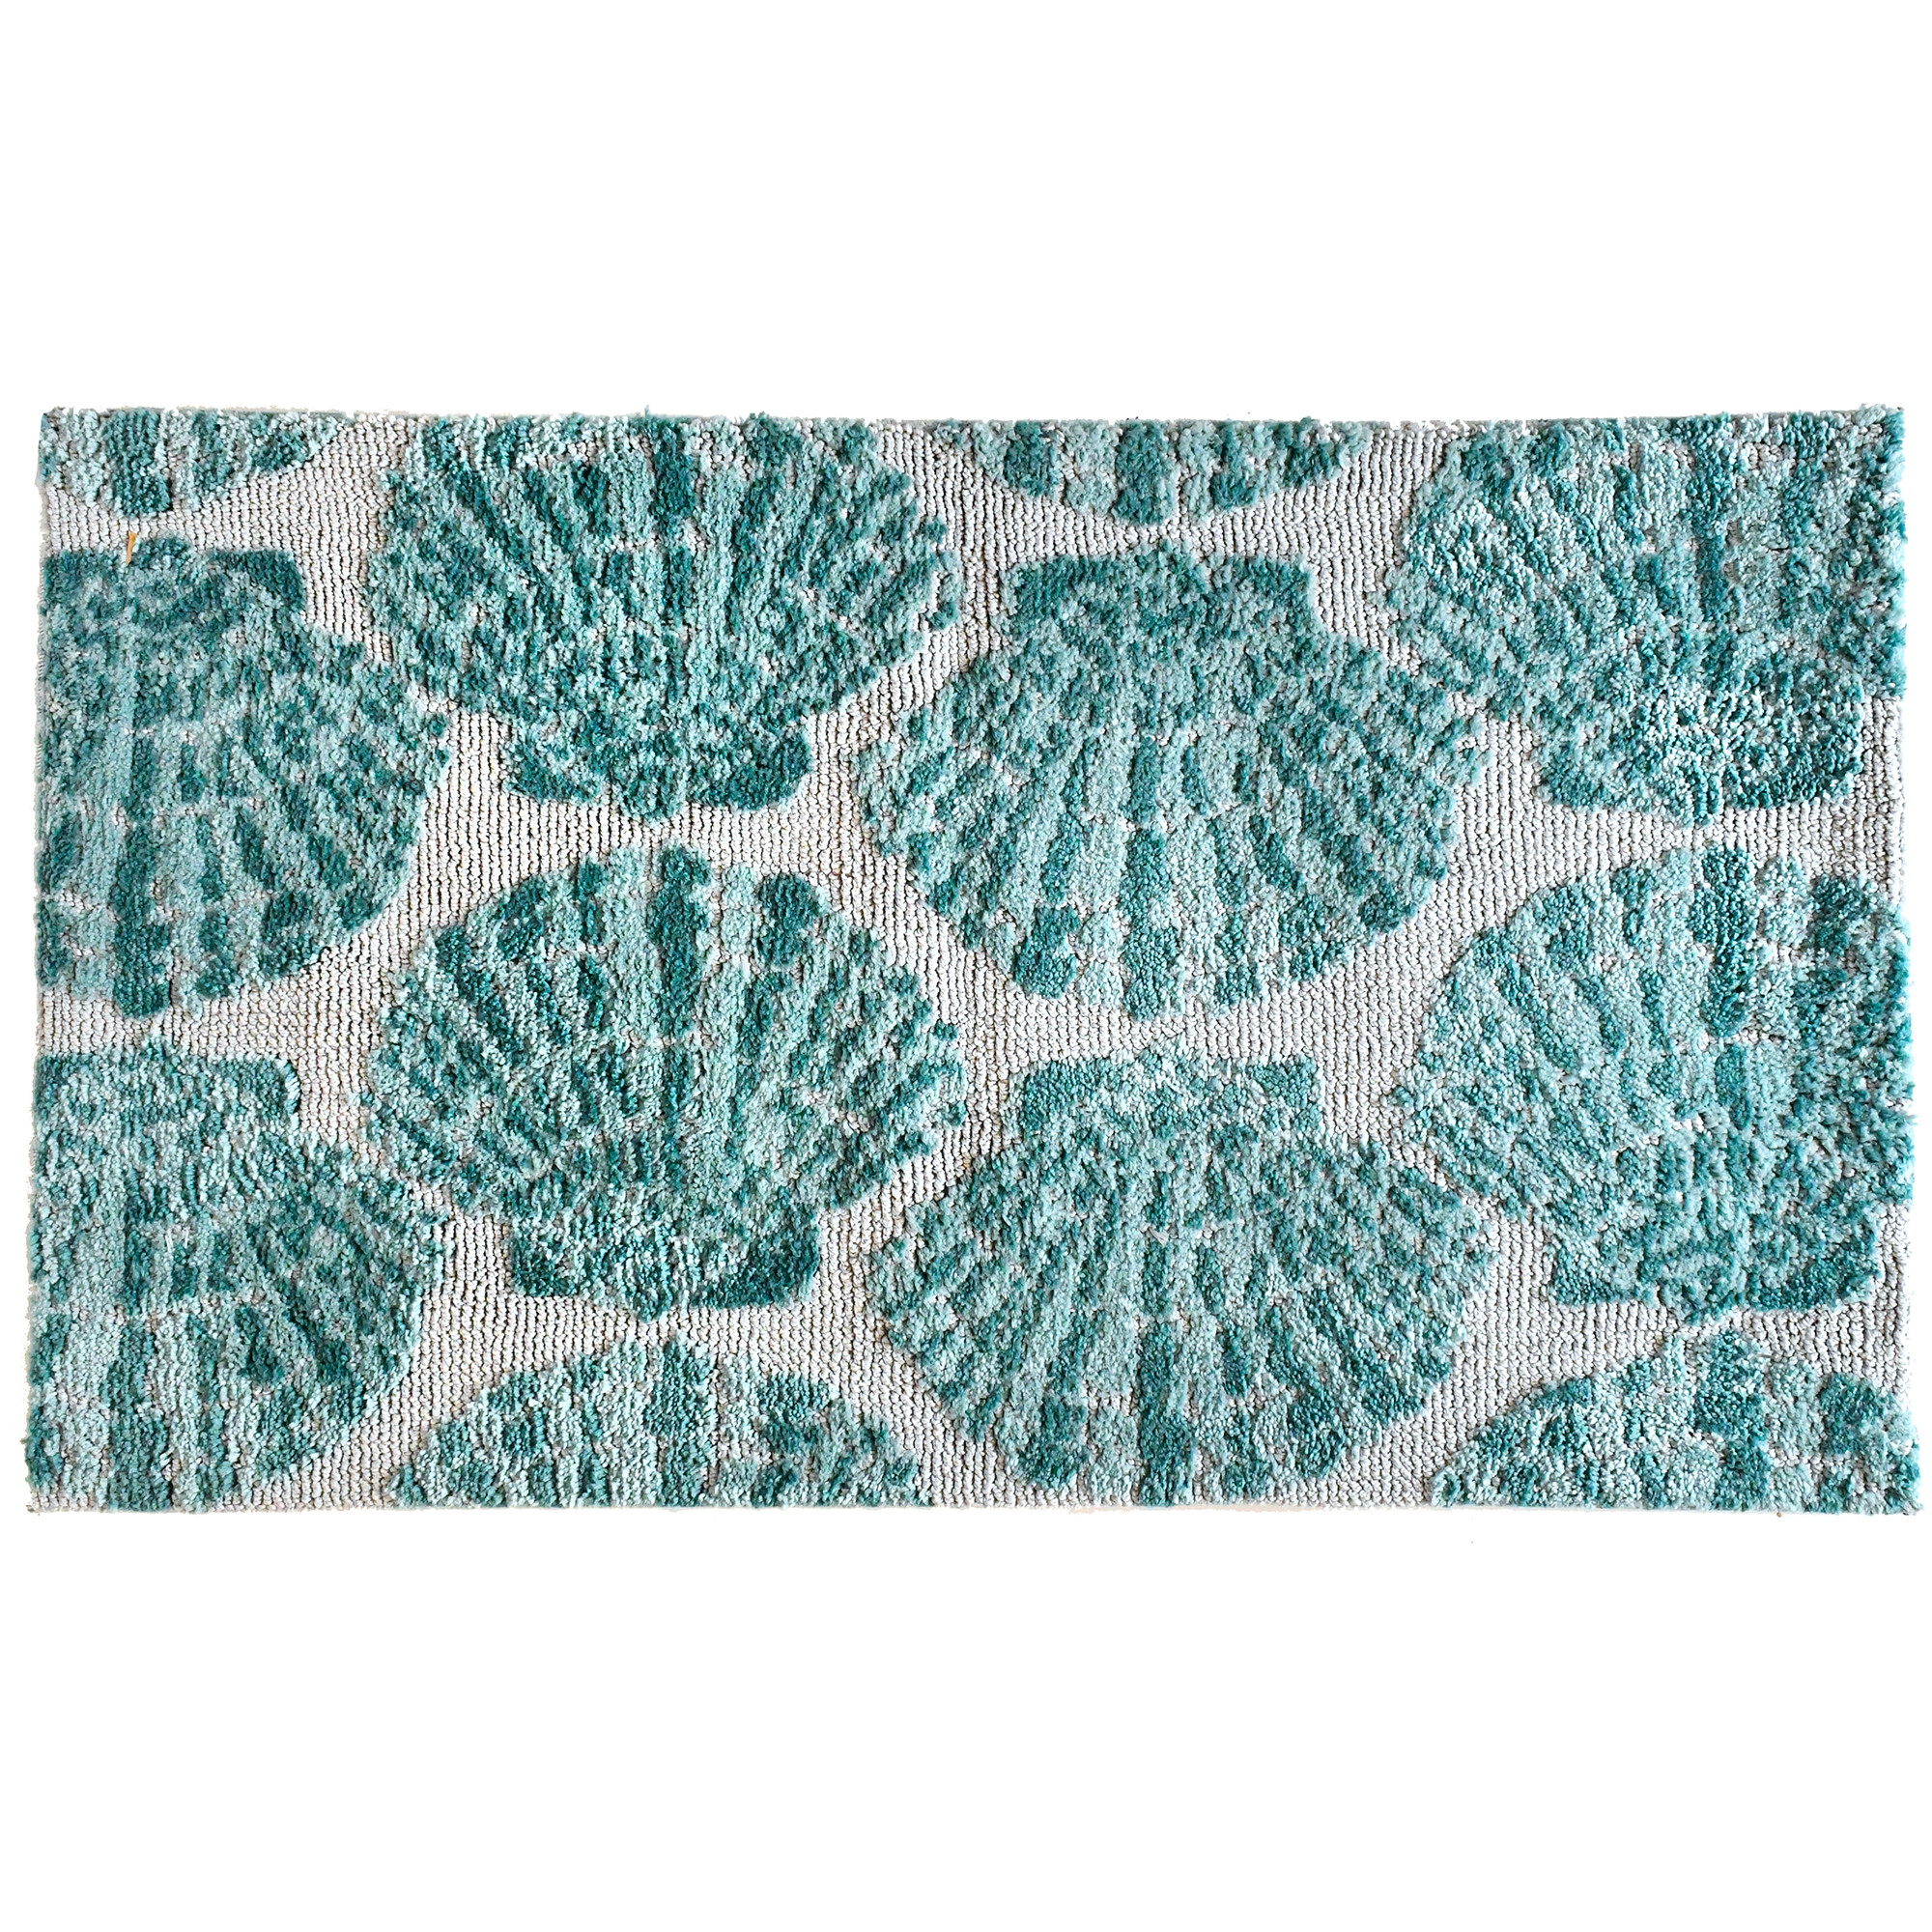 Designer Kris Ruff repeats aquamarine clam shells against a white background invoking thoughts of the sea. This Simple Spaces by Jellybean® rug is available in two sizes offering compliment to a variety of spaces large and small. From the bathroom to the entry, the call of the sea is never far away.